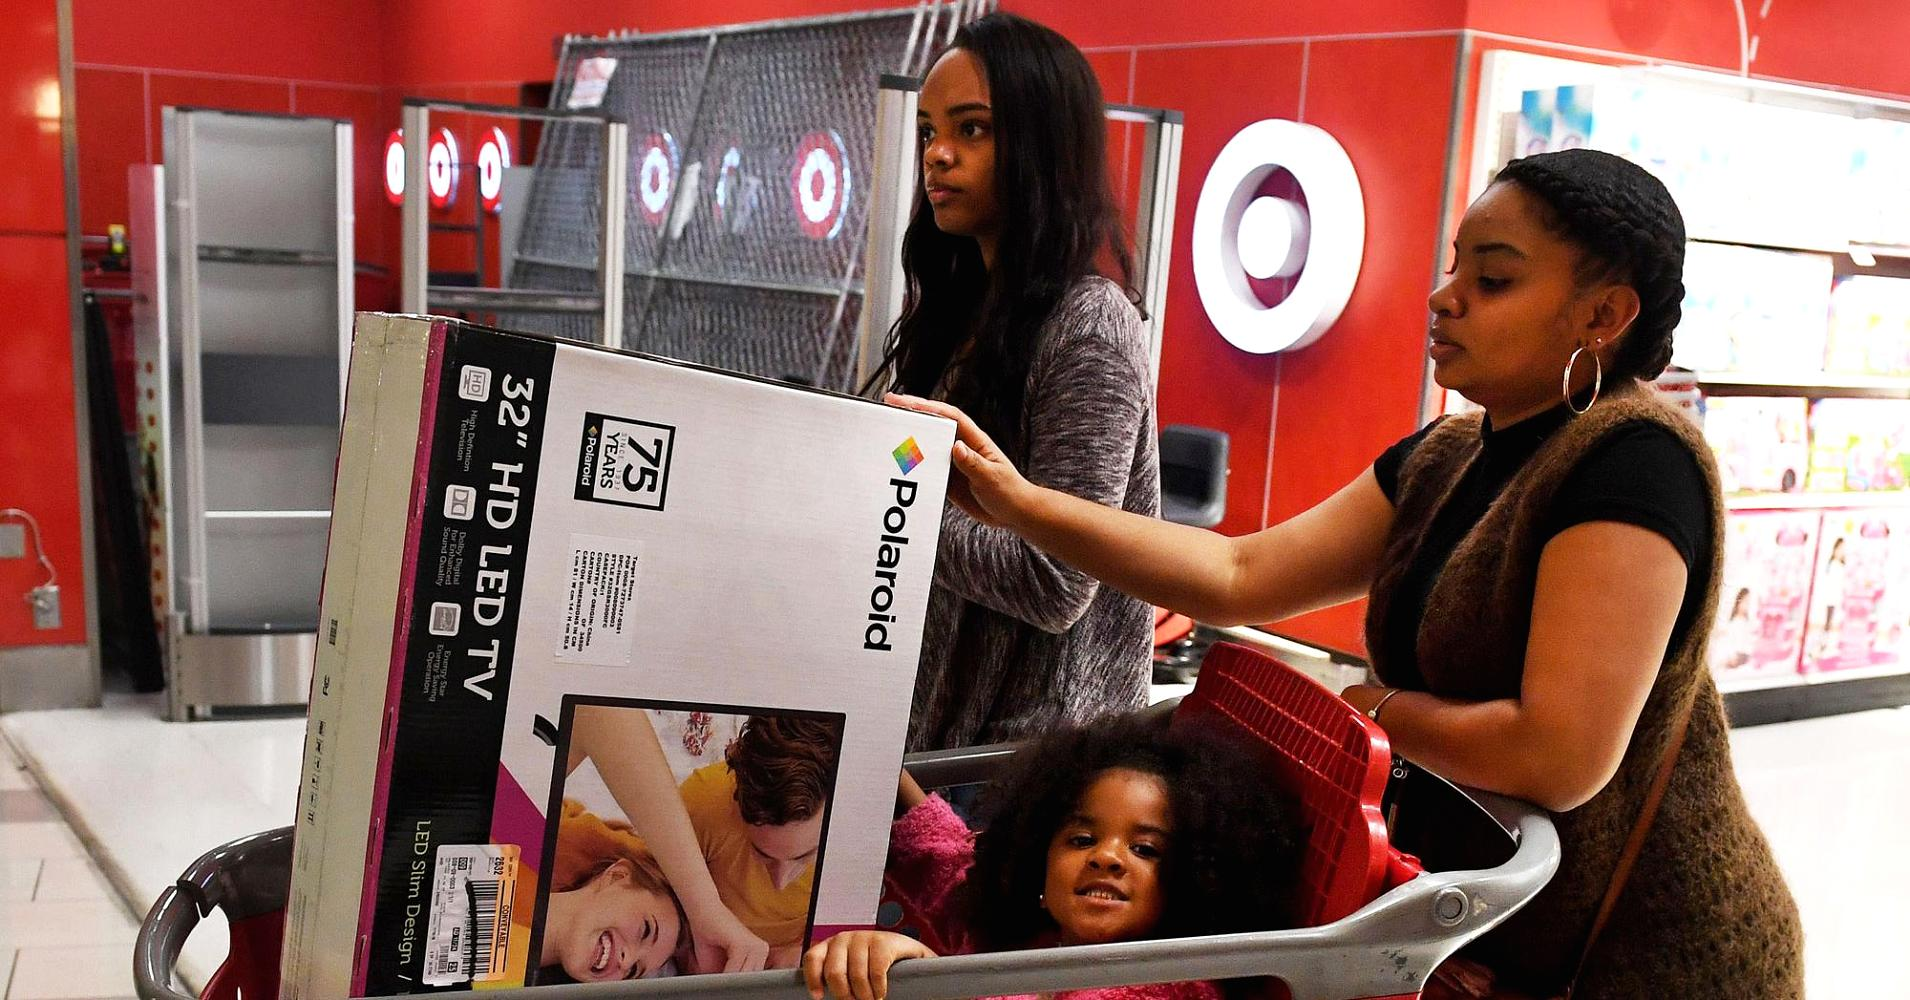 Target's holiday forecast disappoints, sending shares lower | CNBC